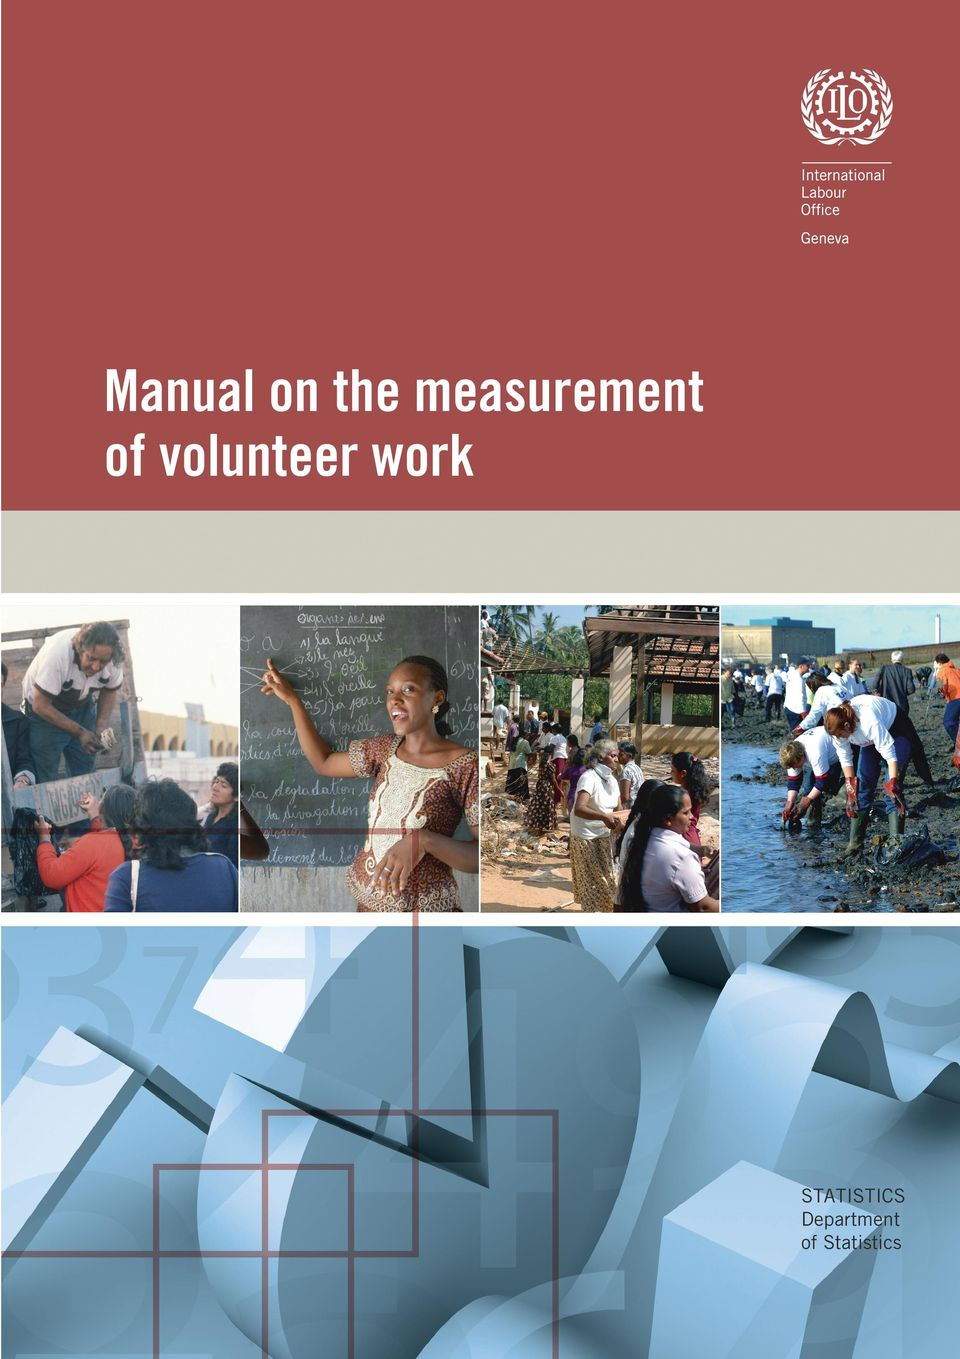 The 18th International Conference of Labour Statisticians discussed and approved the Manual in 2008, making this the first-ever internationally sanctioned guidance to national statistical agencies